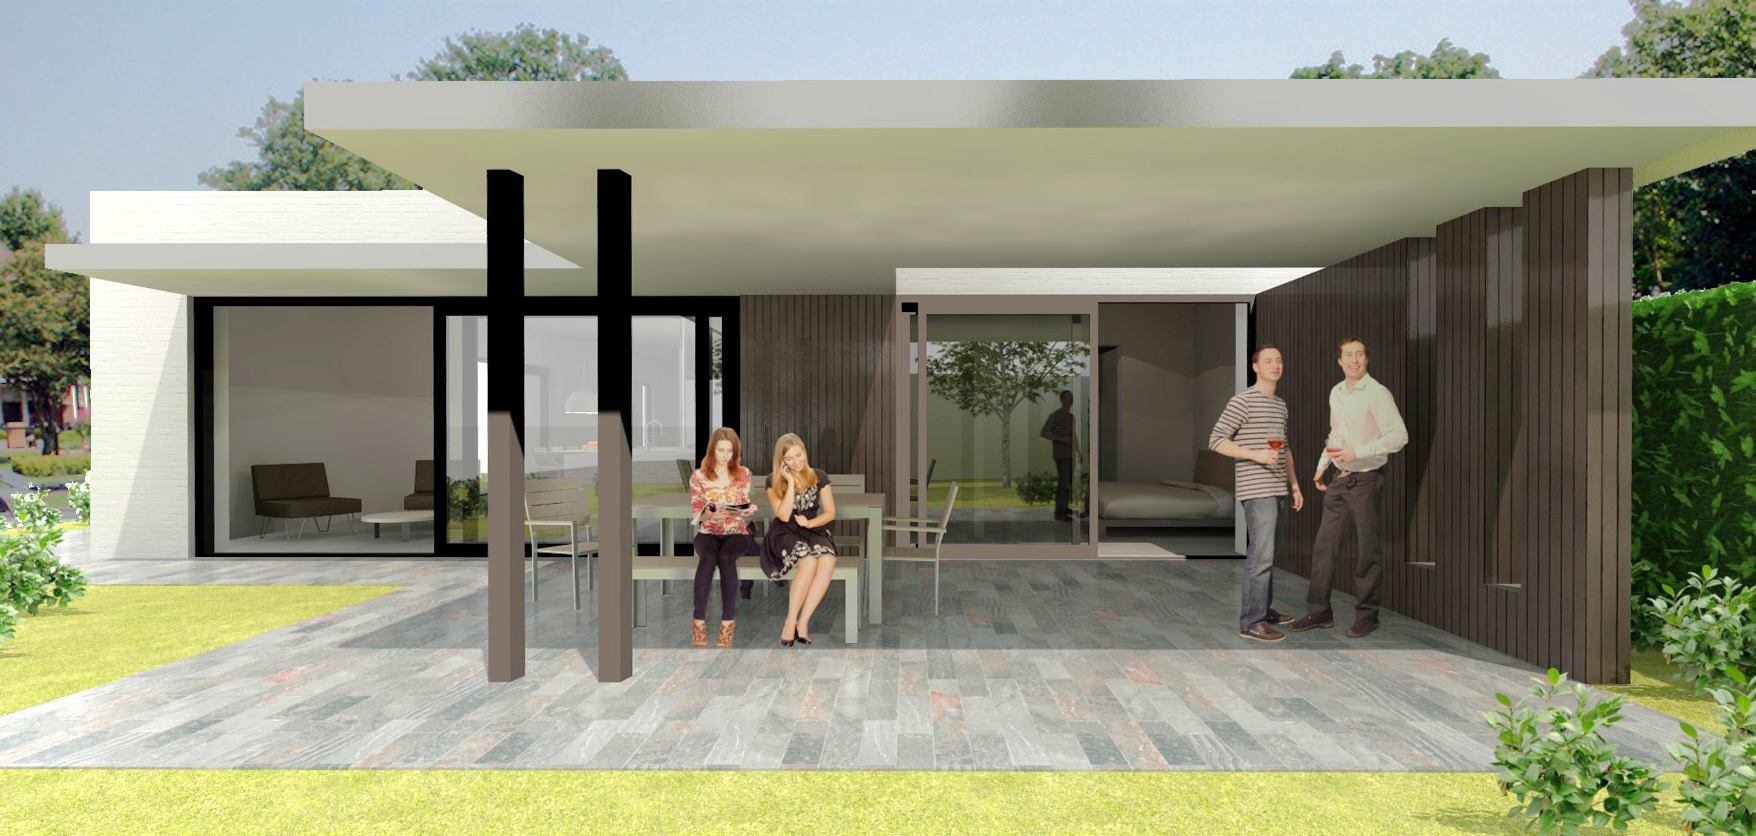 RAW Patiowoning Theresialaan Vught 02 copy